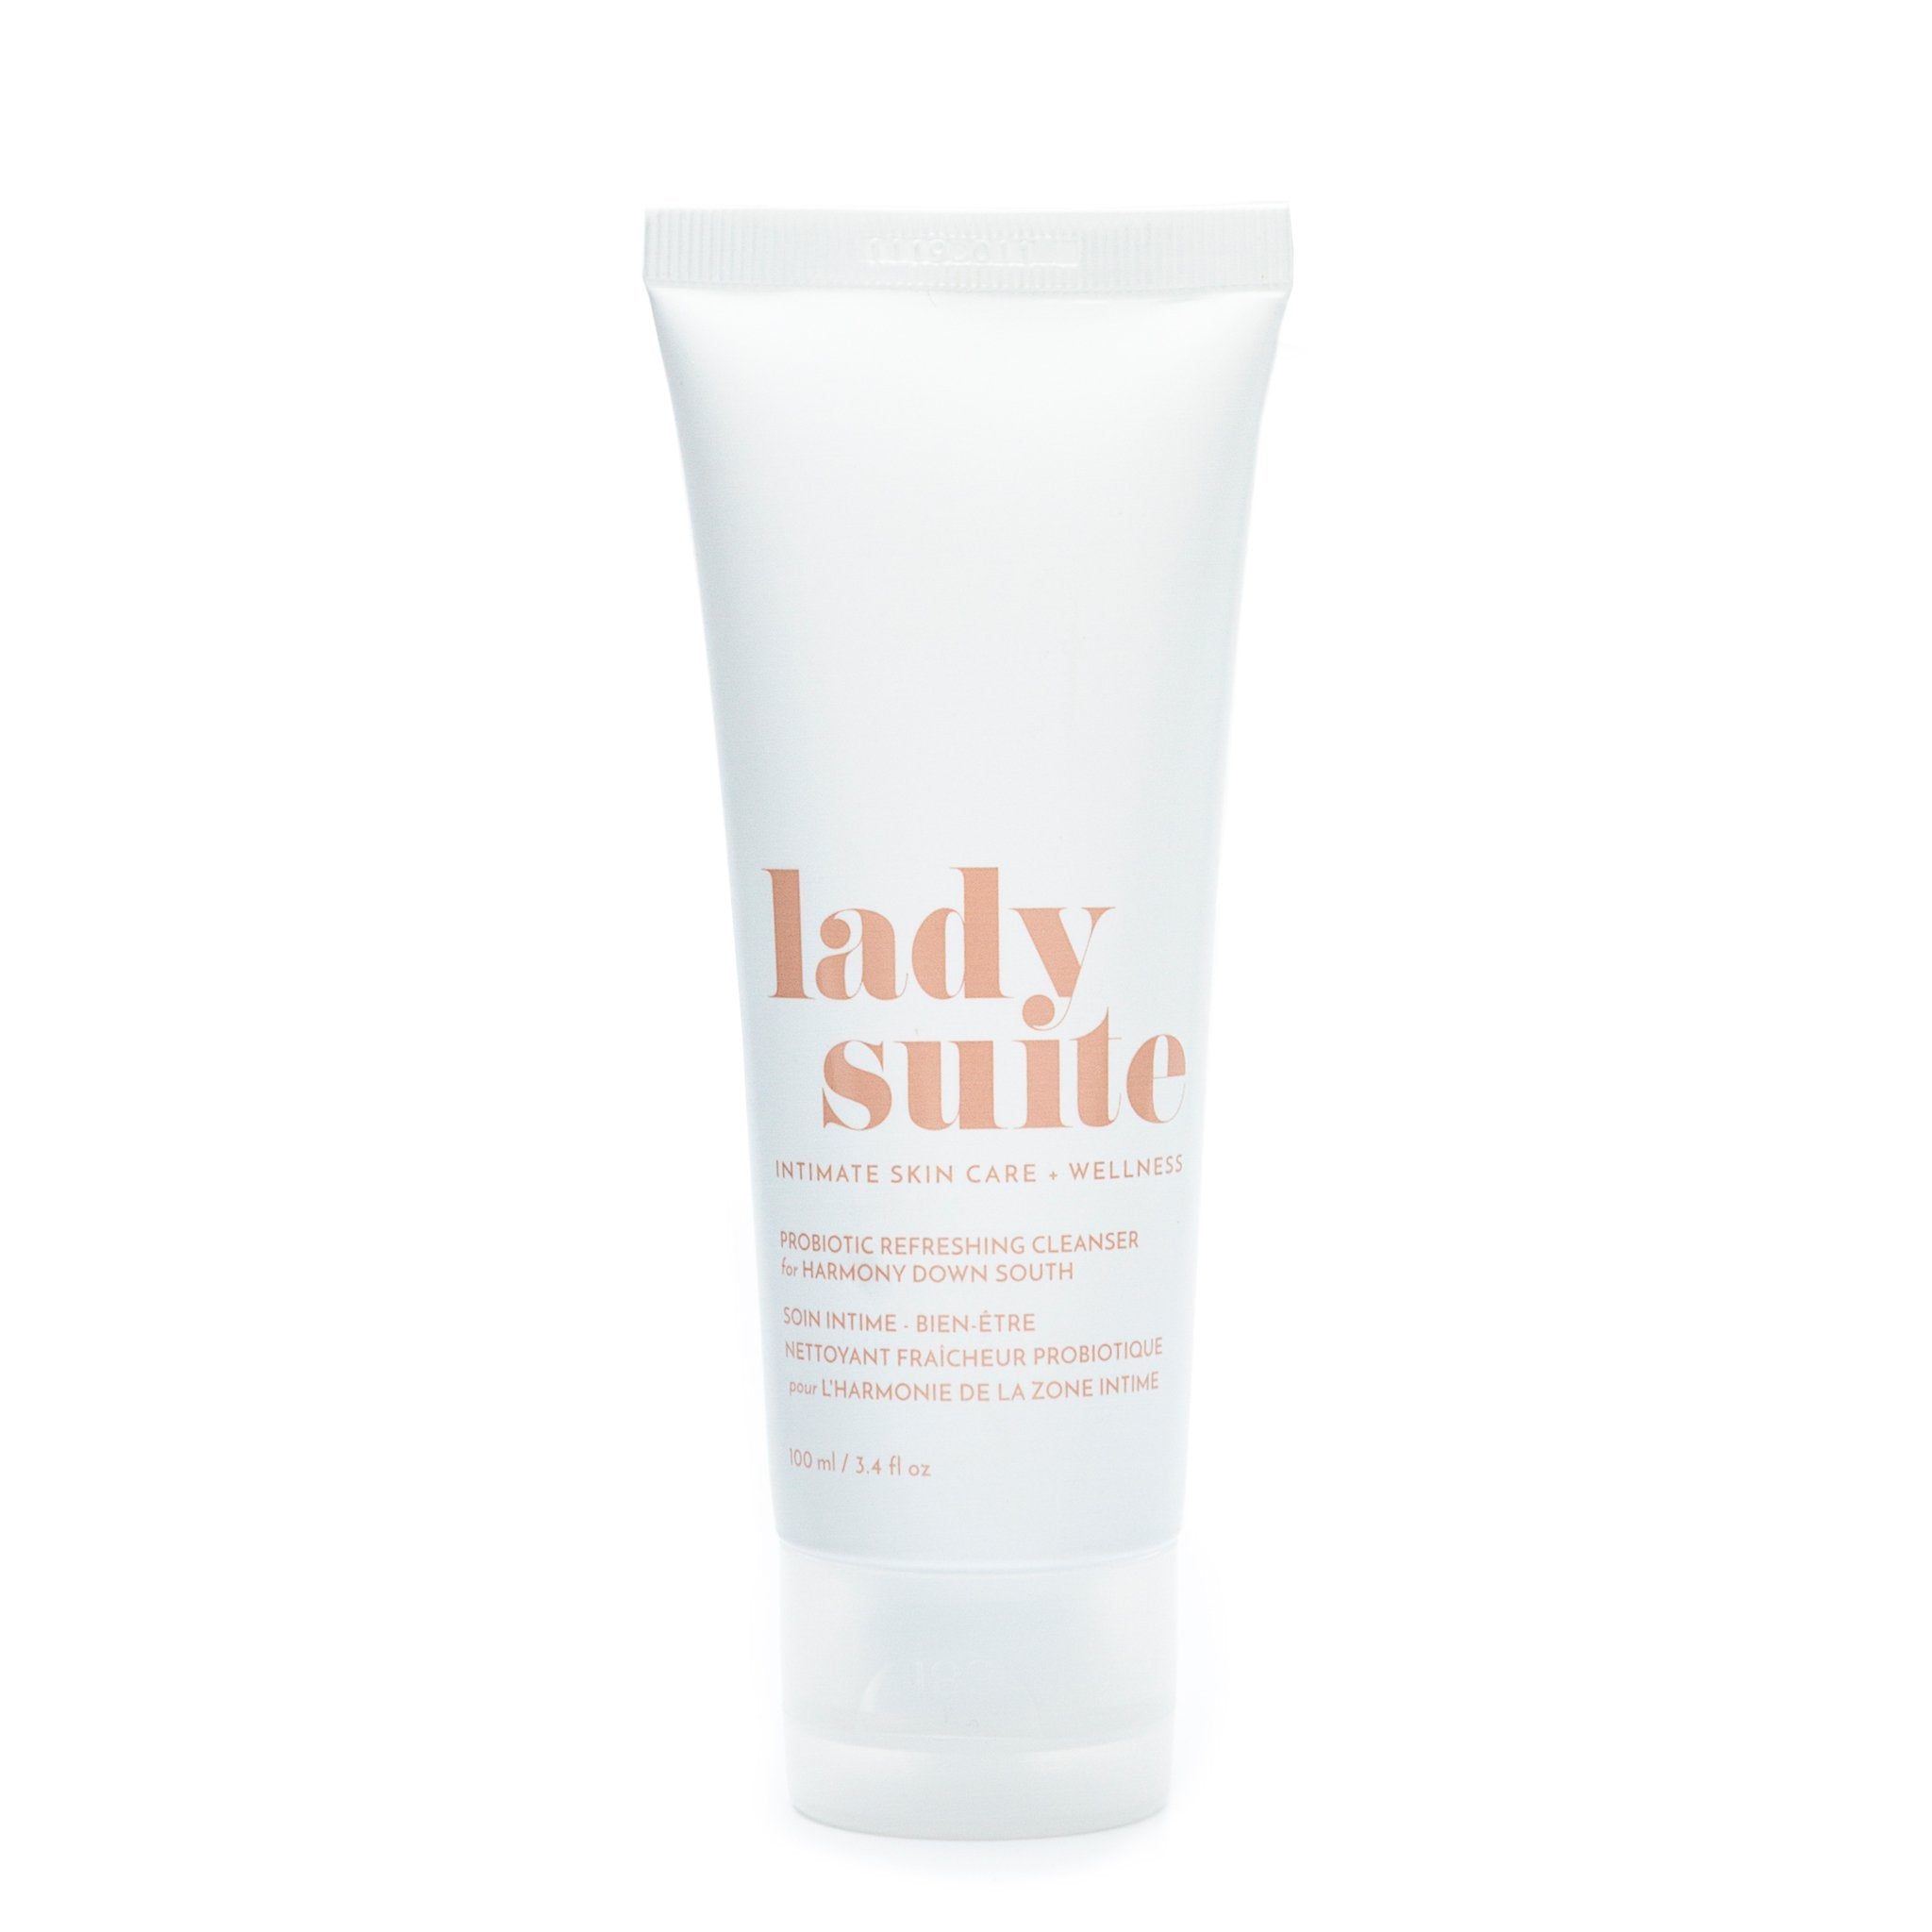 Lady Suite Beauty - Probiotic Refreshing Cleanser for Harmony Down South